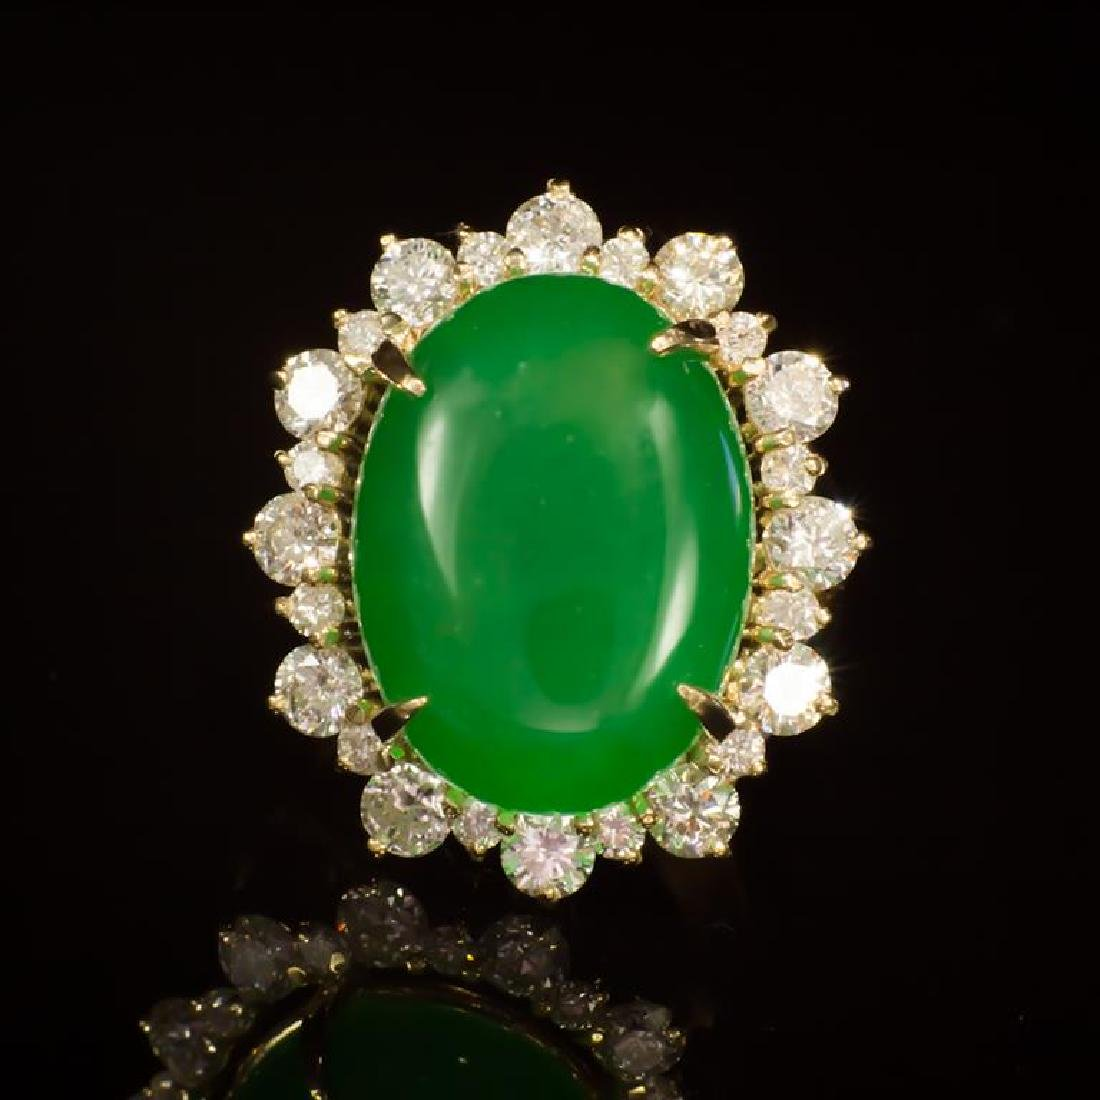 14K Gold 14.26ct Jadeite 2.41ct Diamond Ring